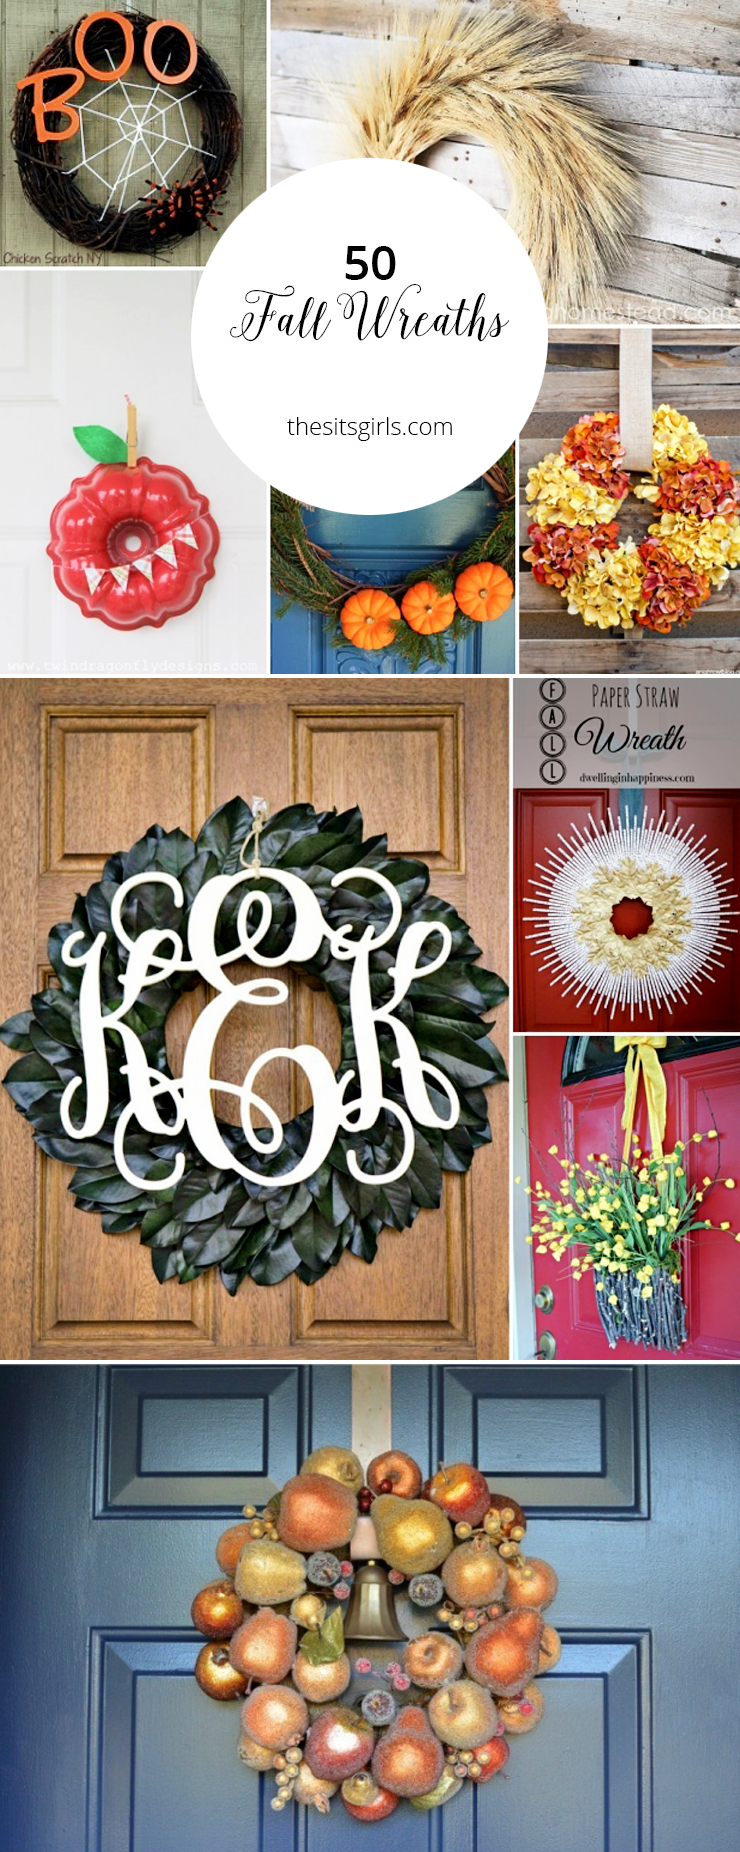 50 Beautiful Fall Wreath Ideas   Dress up your house for fall with these easy DIY tutorials. With 50 fall wreaths for front door decor, you are sure to find the perfect wreath for your house.